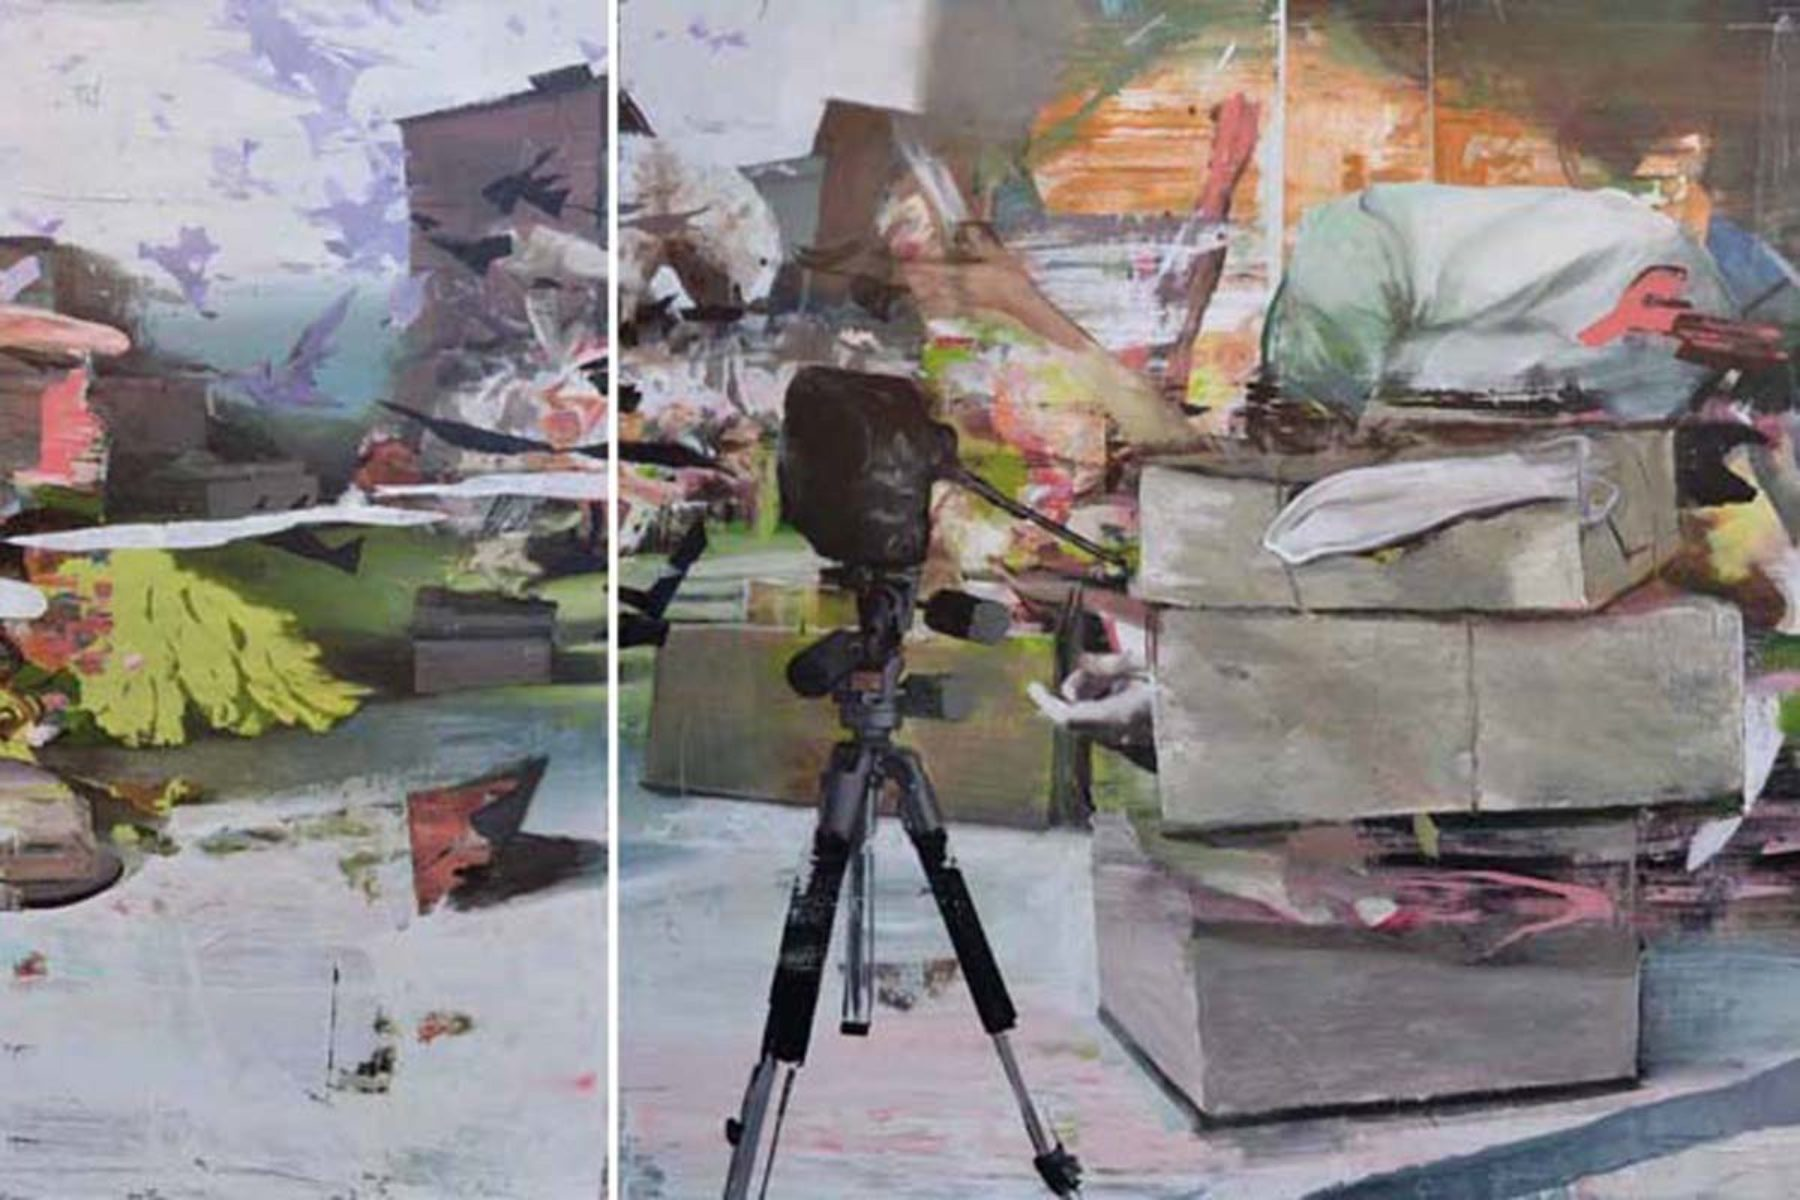 Giuseppe Gonella, The paradox, 2010, acrylic on canvas, 150 x 150 cm, 150 x 200 cm (diptych)